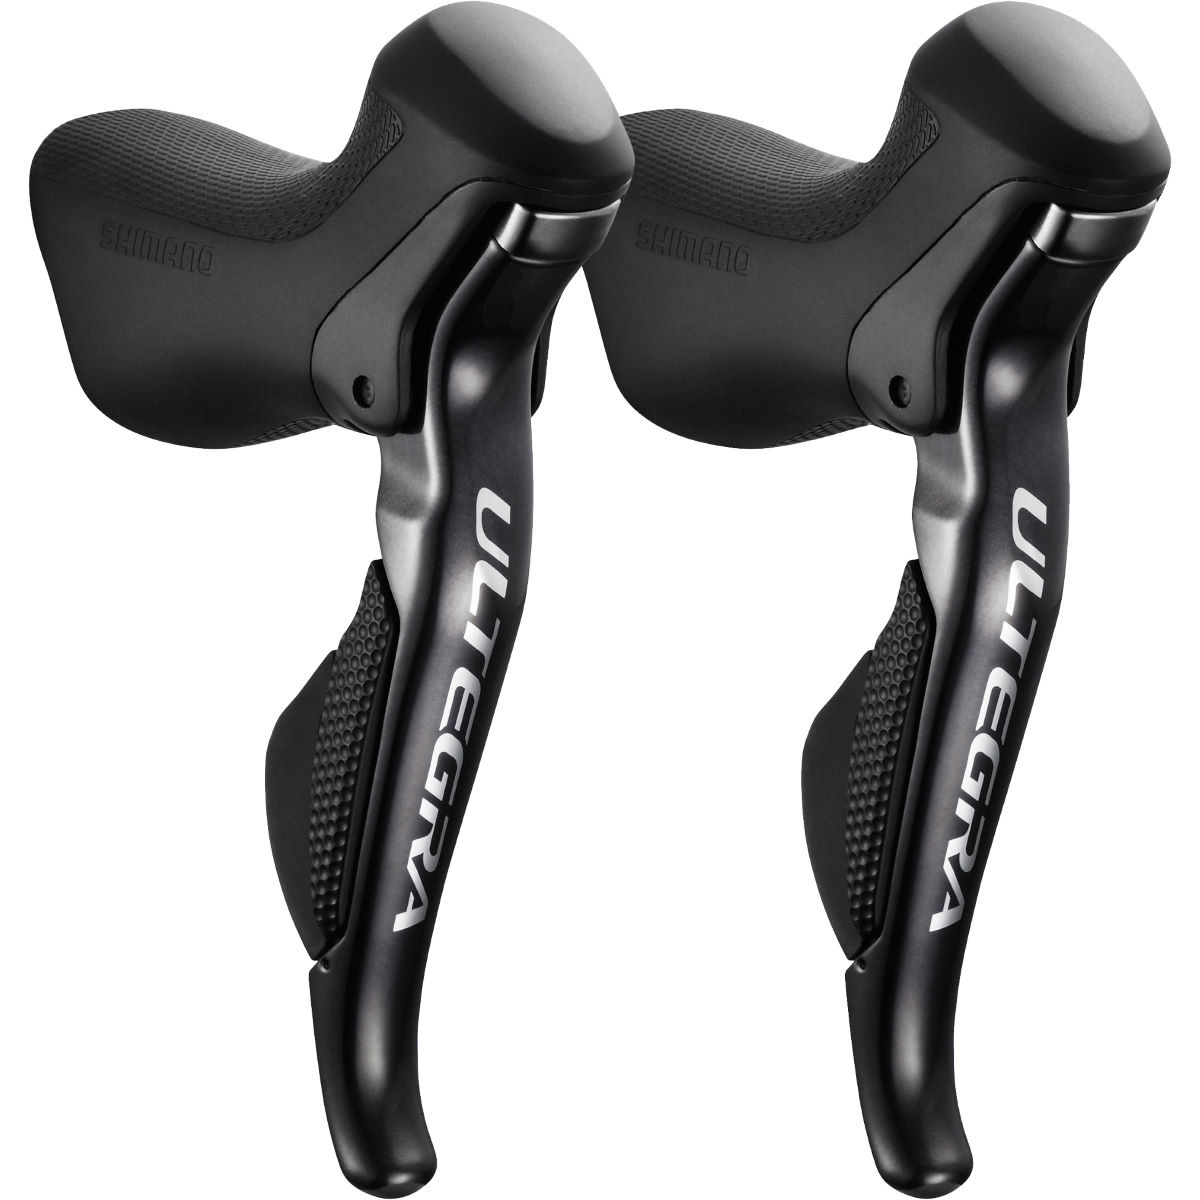 Levier Shimano Ultegra Di2 6870 STI (2 x 11 vitesses) - Rear - Right